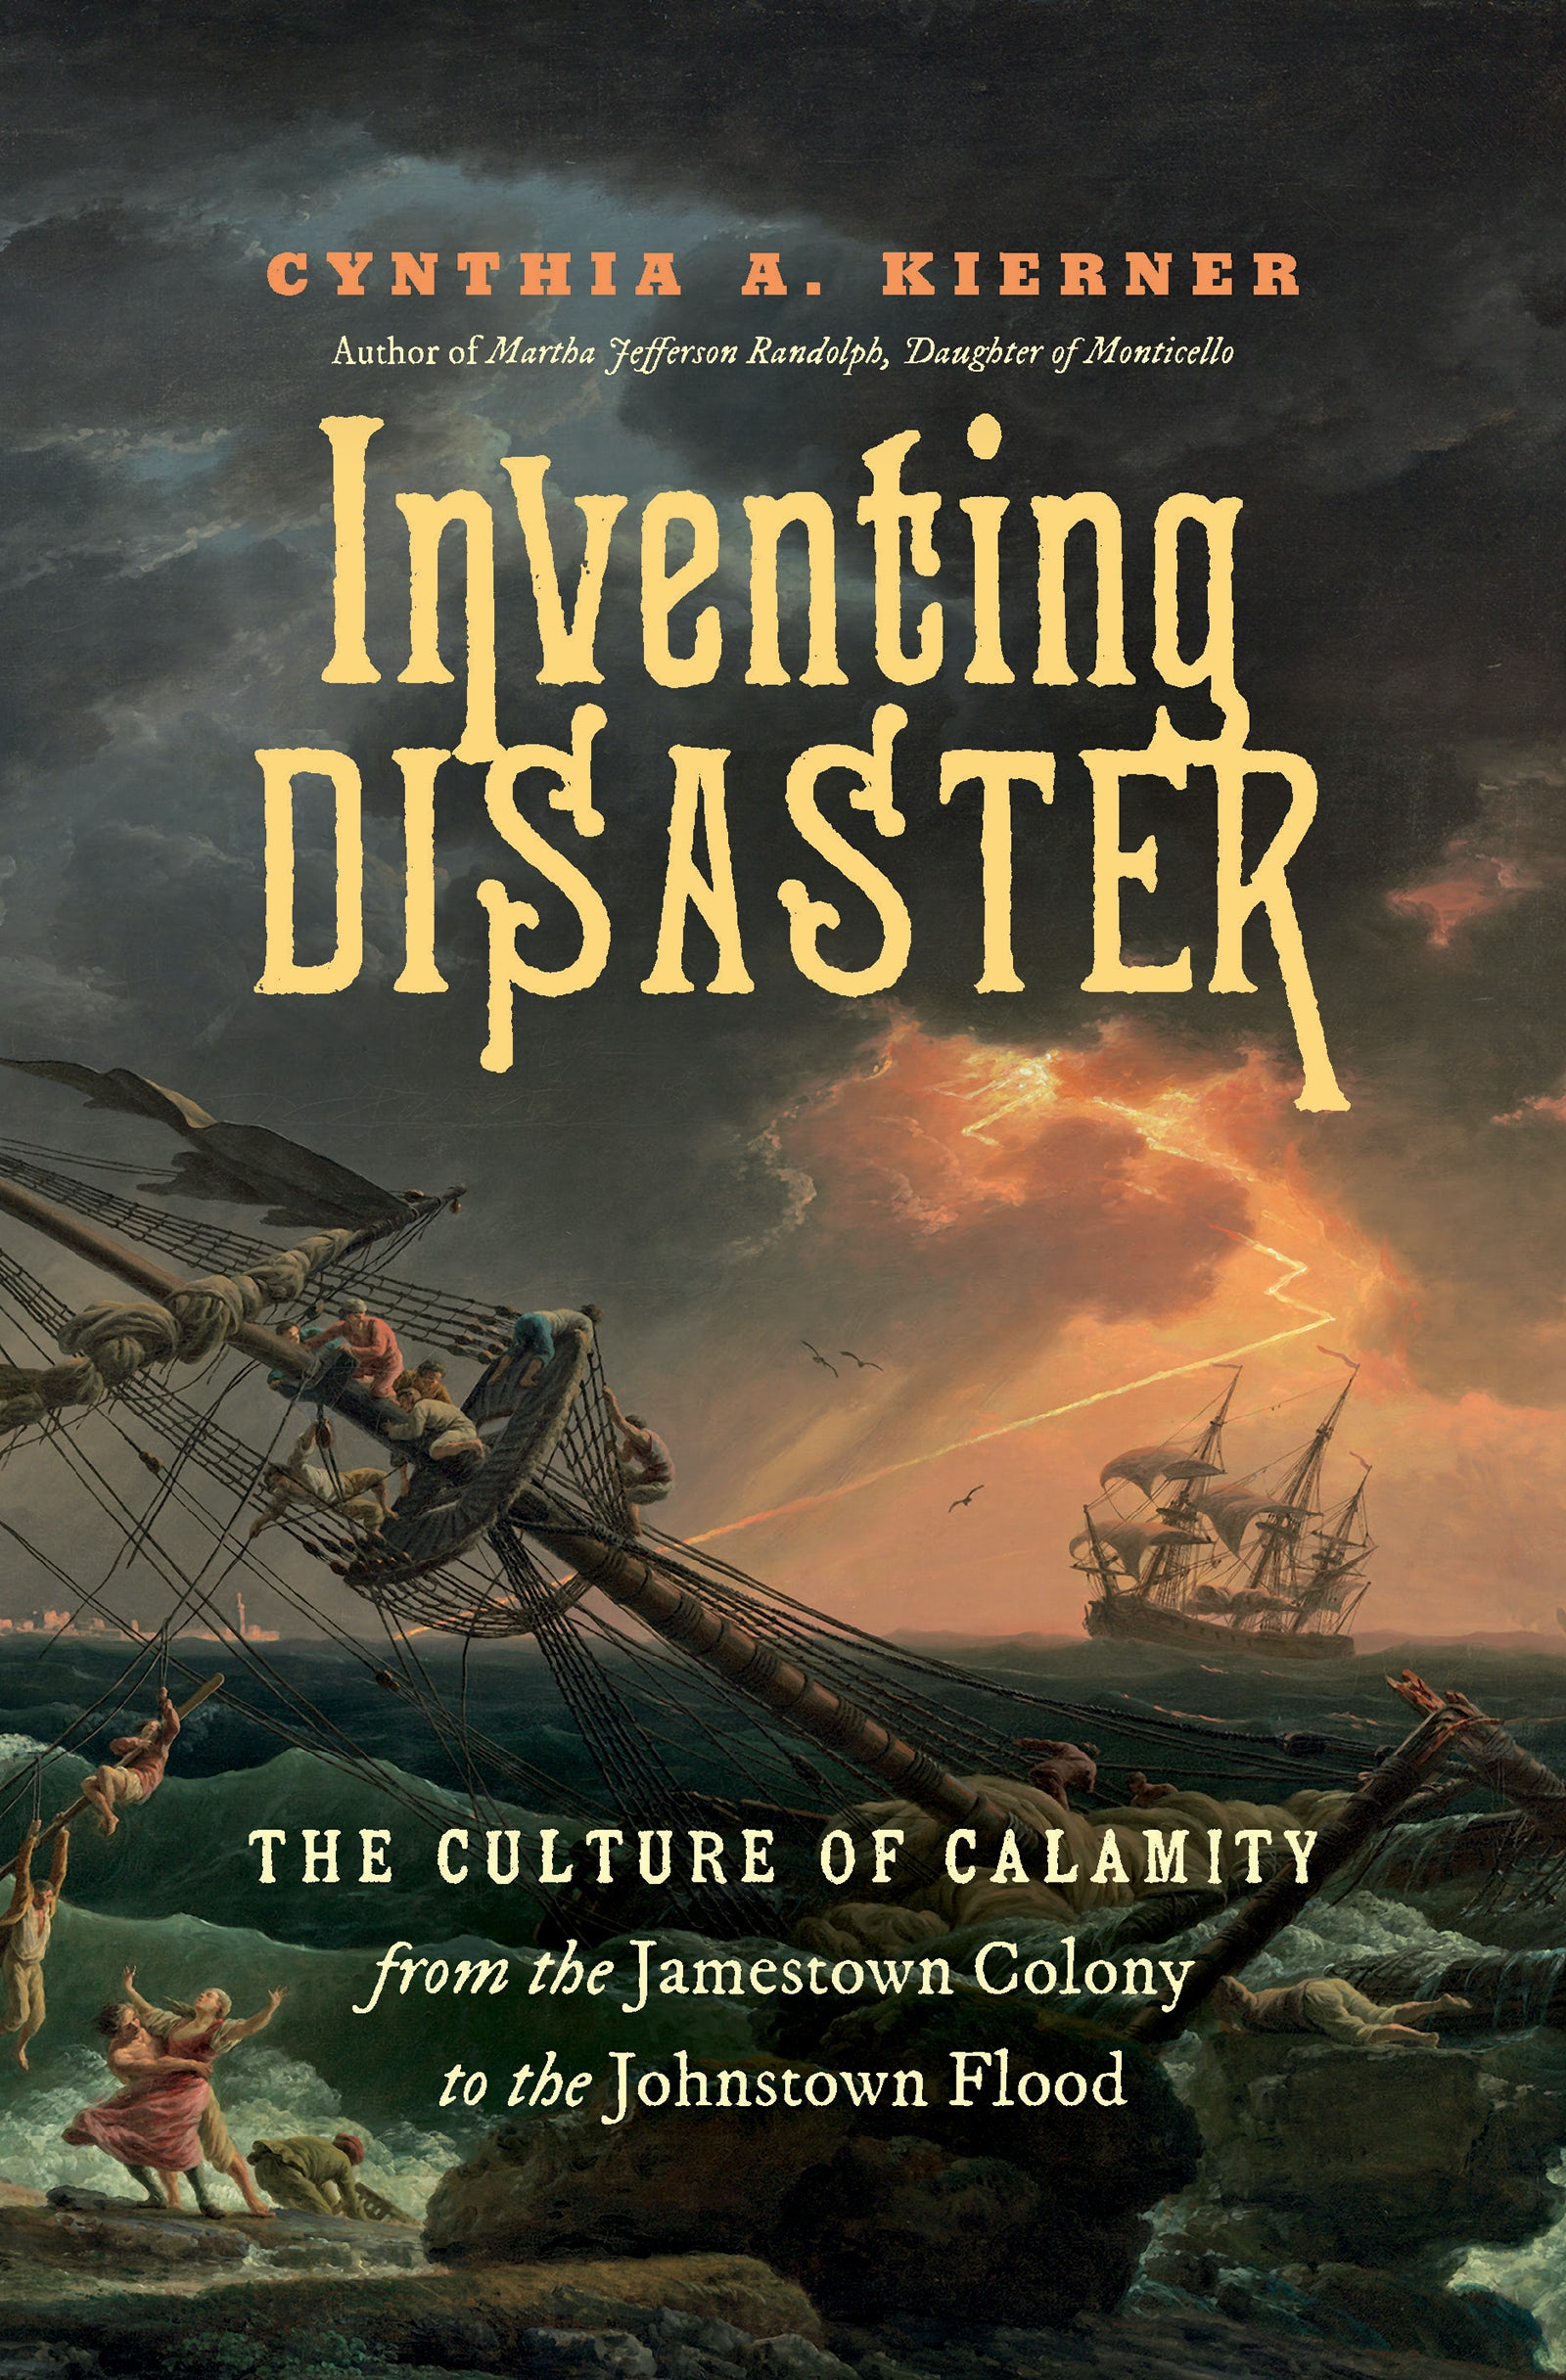 Cover of Inventing Disaster